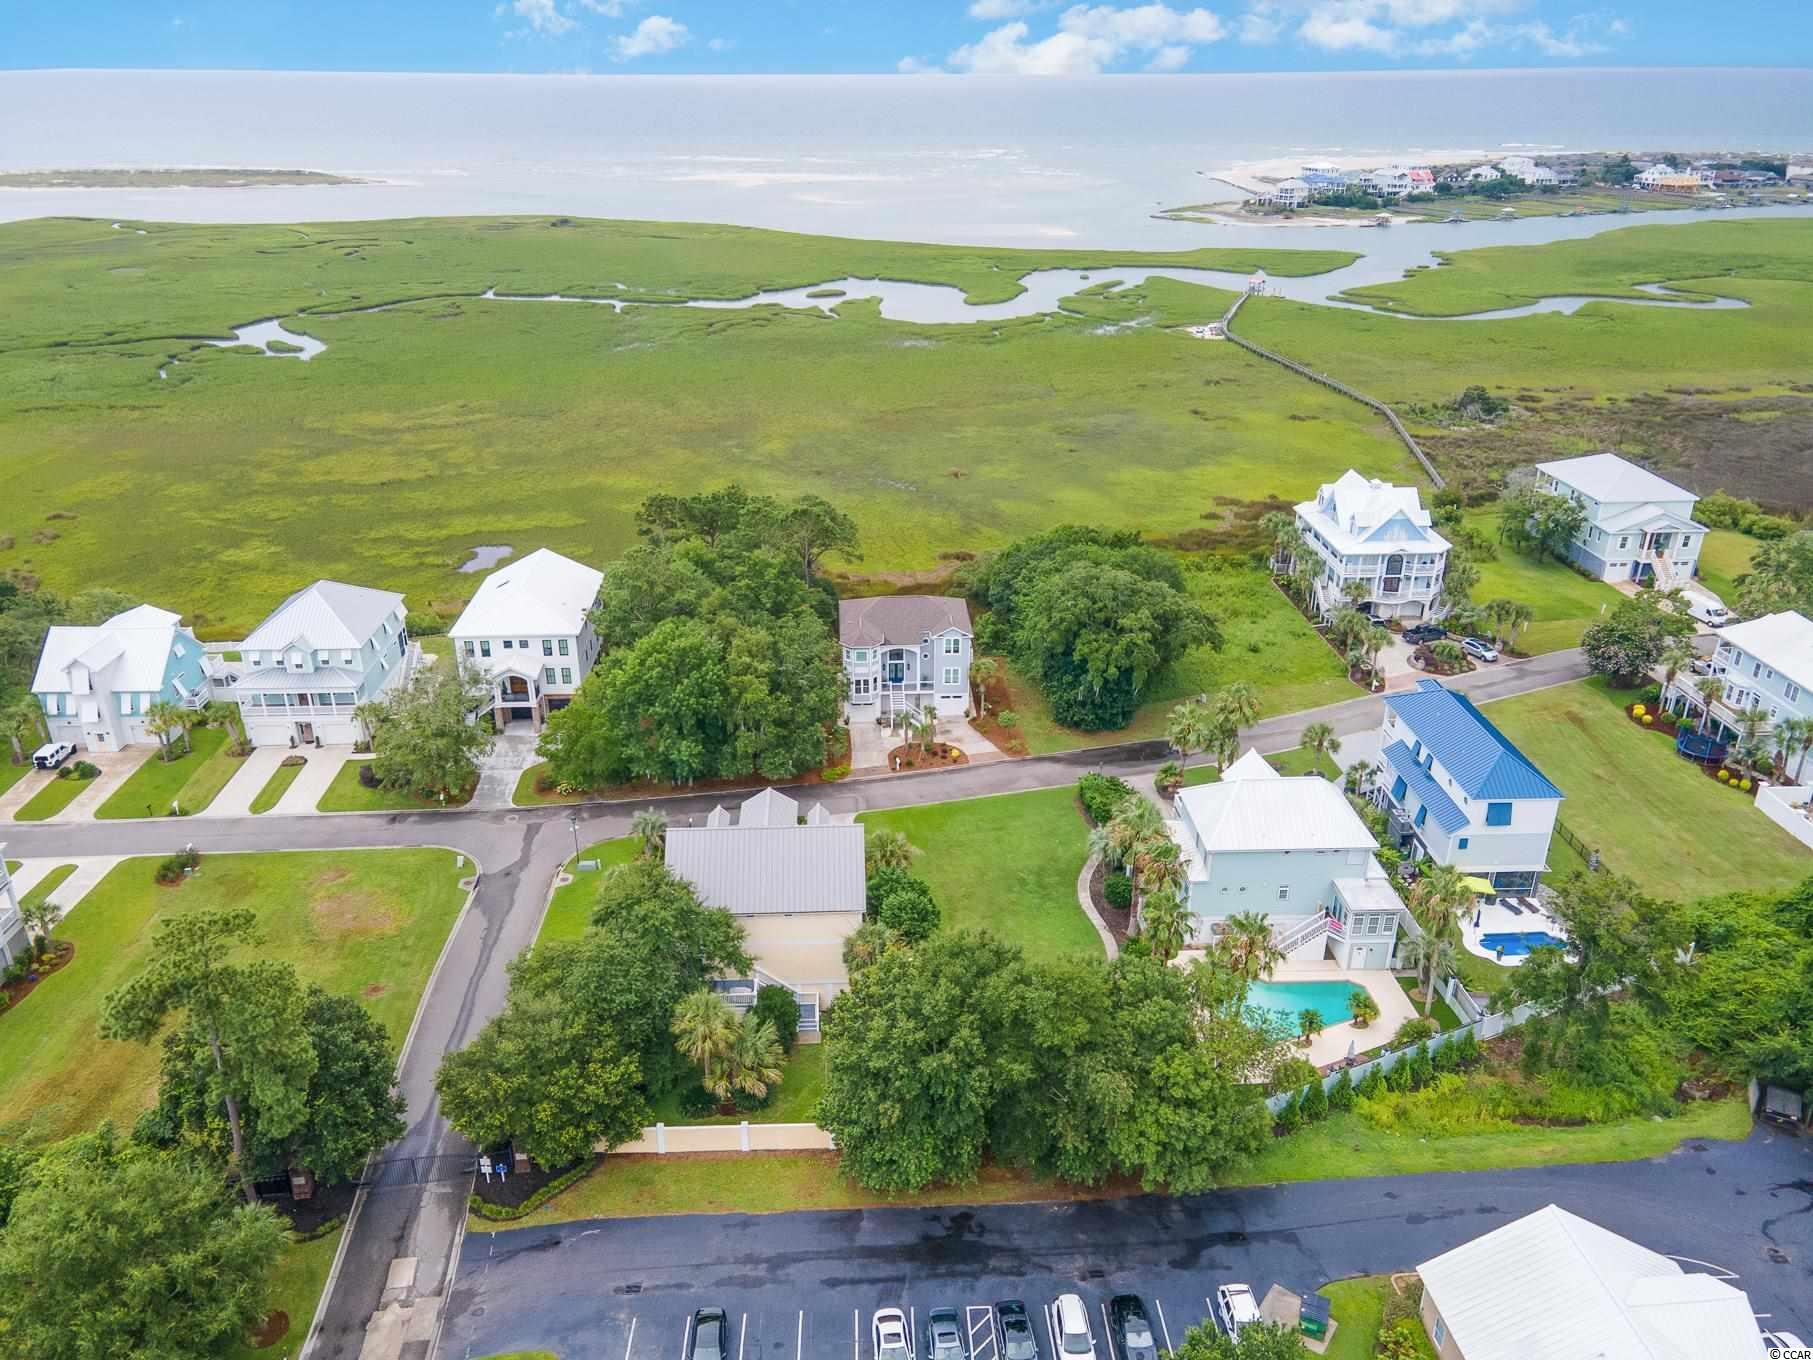 Perfect opportunity to build your dream home in beautiful Pawleys Island! Small gated community is quiet, a short ride to the beach and absolutely gorgeous. Don't wait, this property wont last long. Call today with any questions or to schedule a showing.